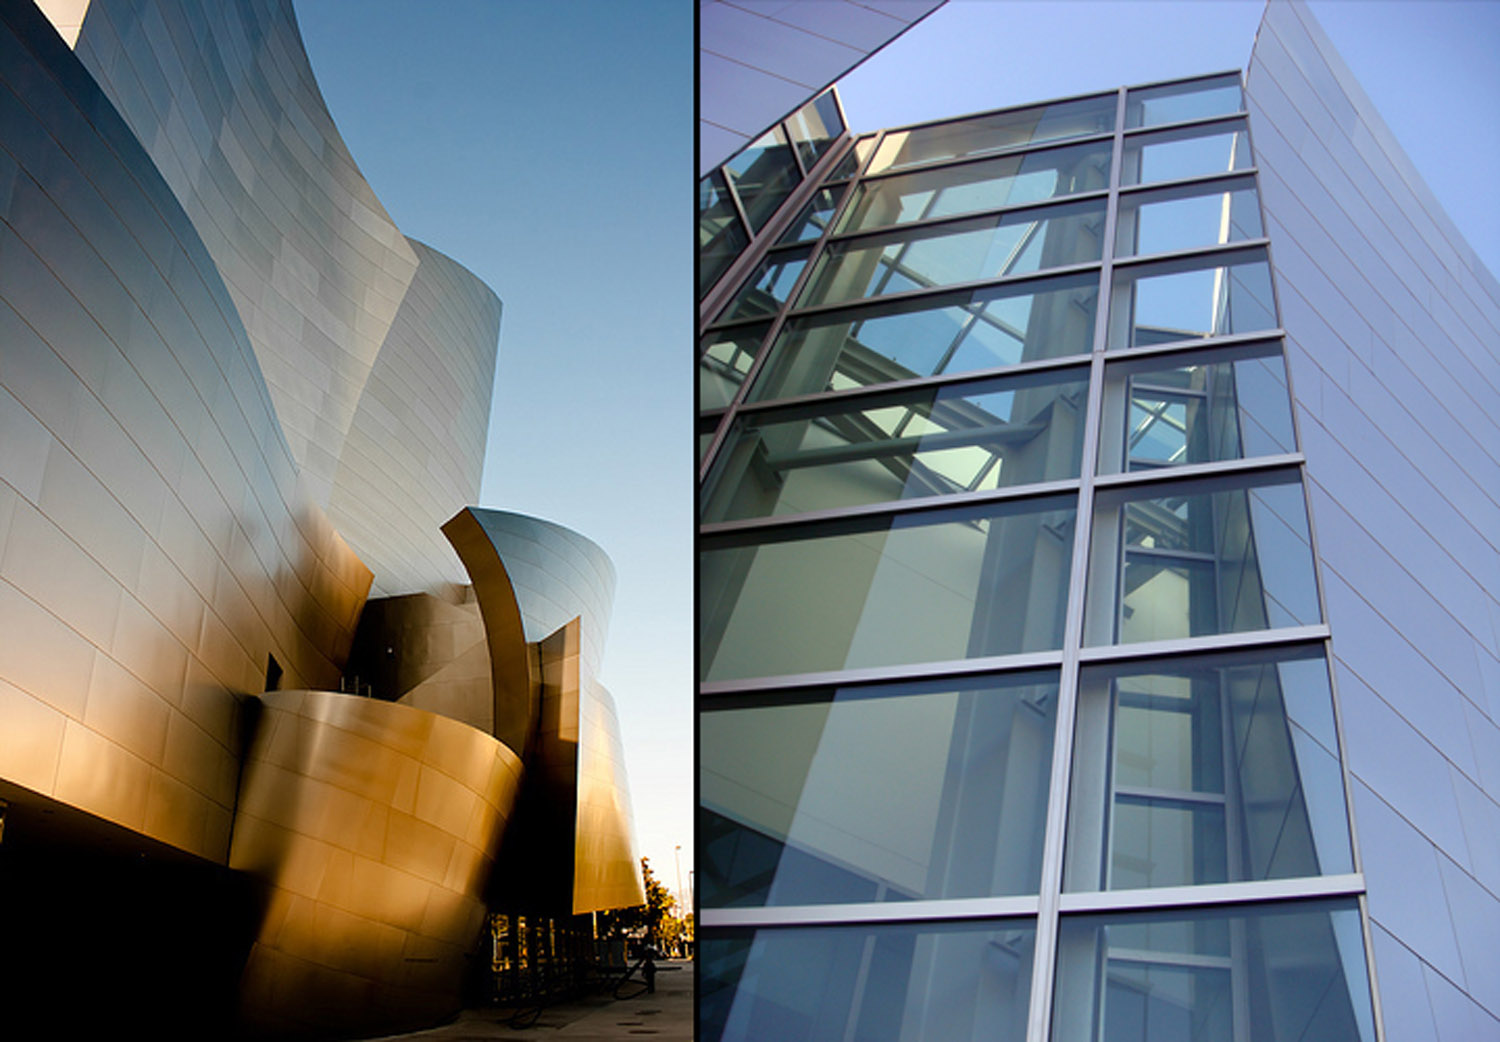 mm_Walt Disney Concert Hall design by Frank Gehry_12c